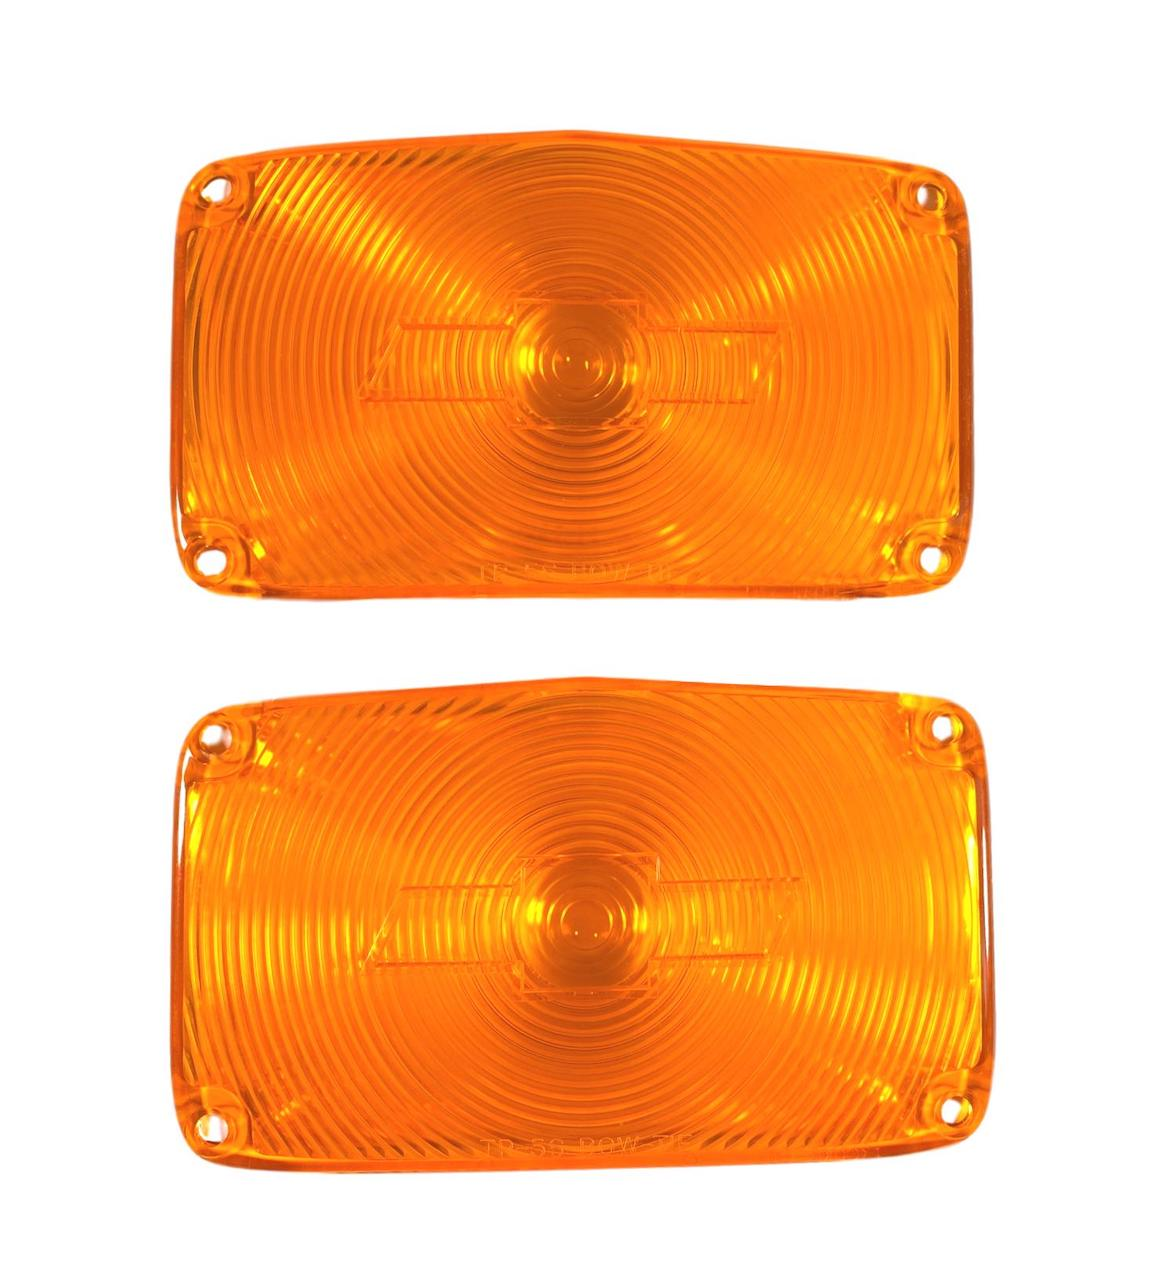 1956 Chevy Amber Parklight Lenses with Bowtie